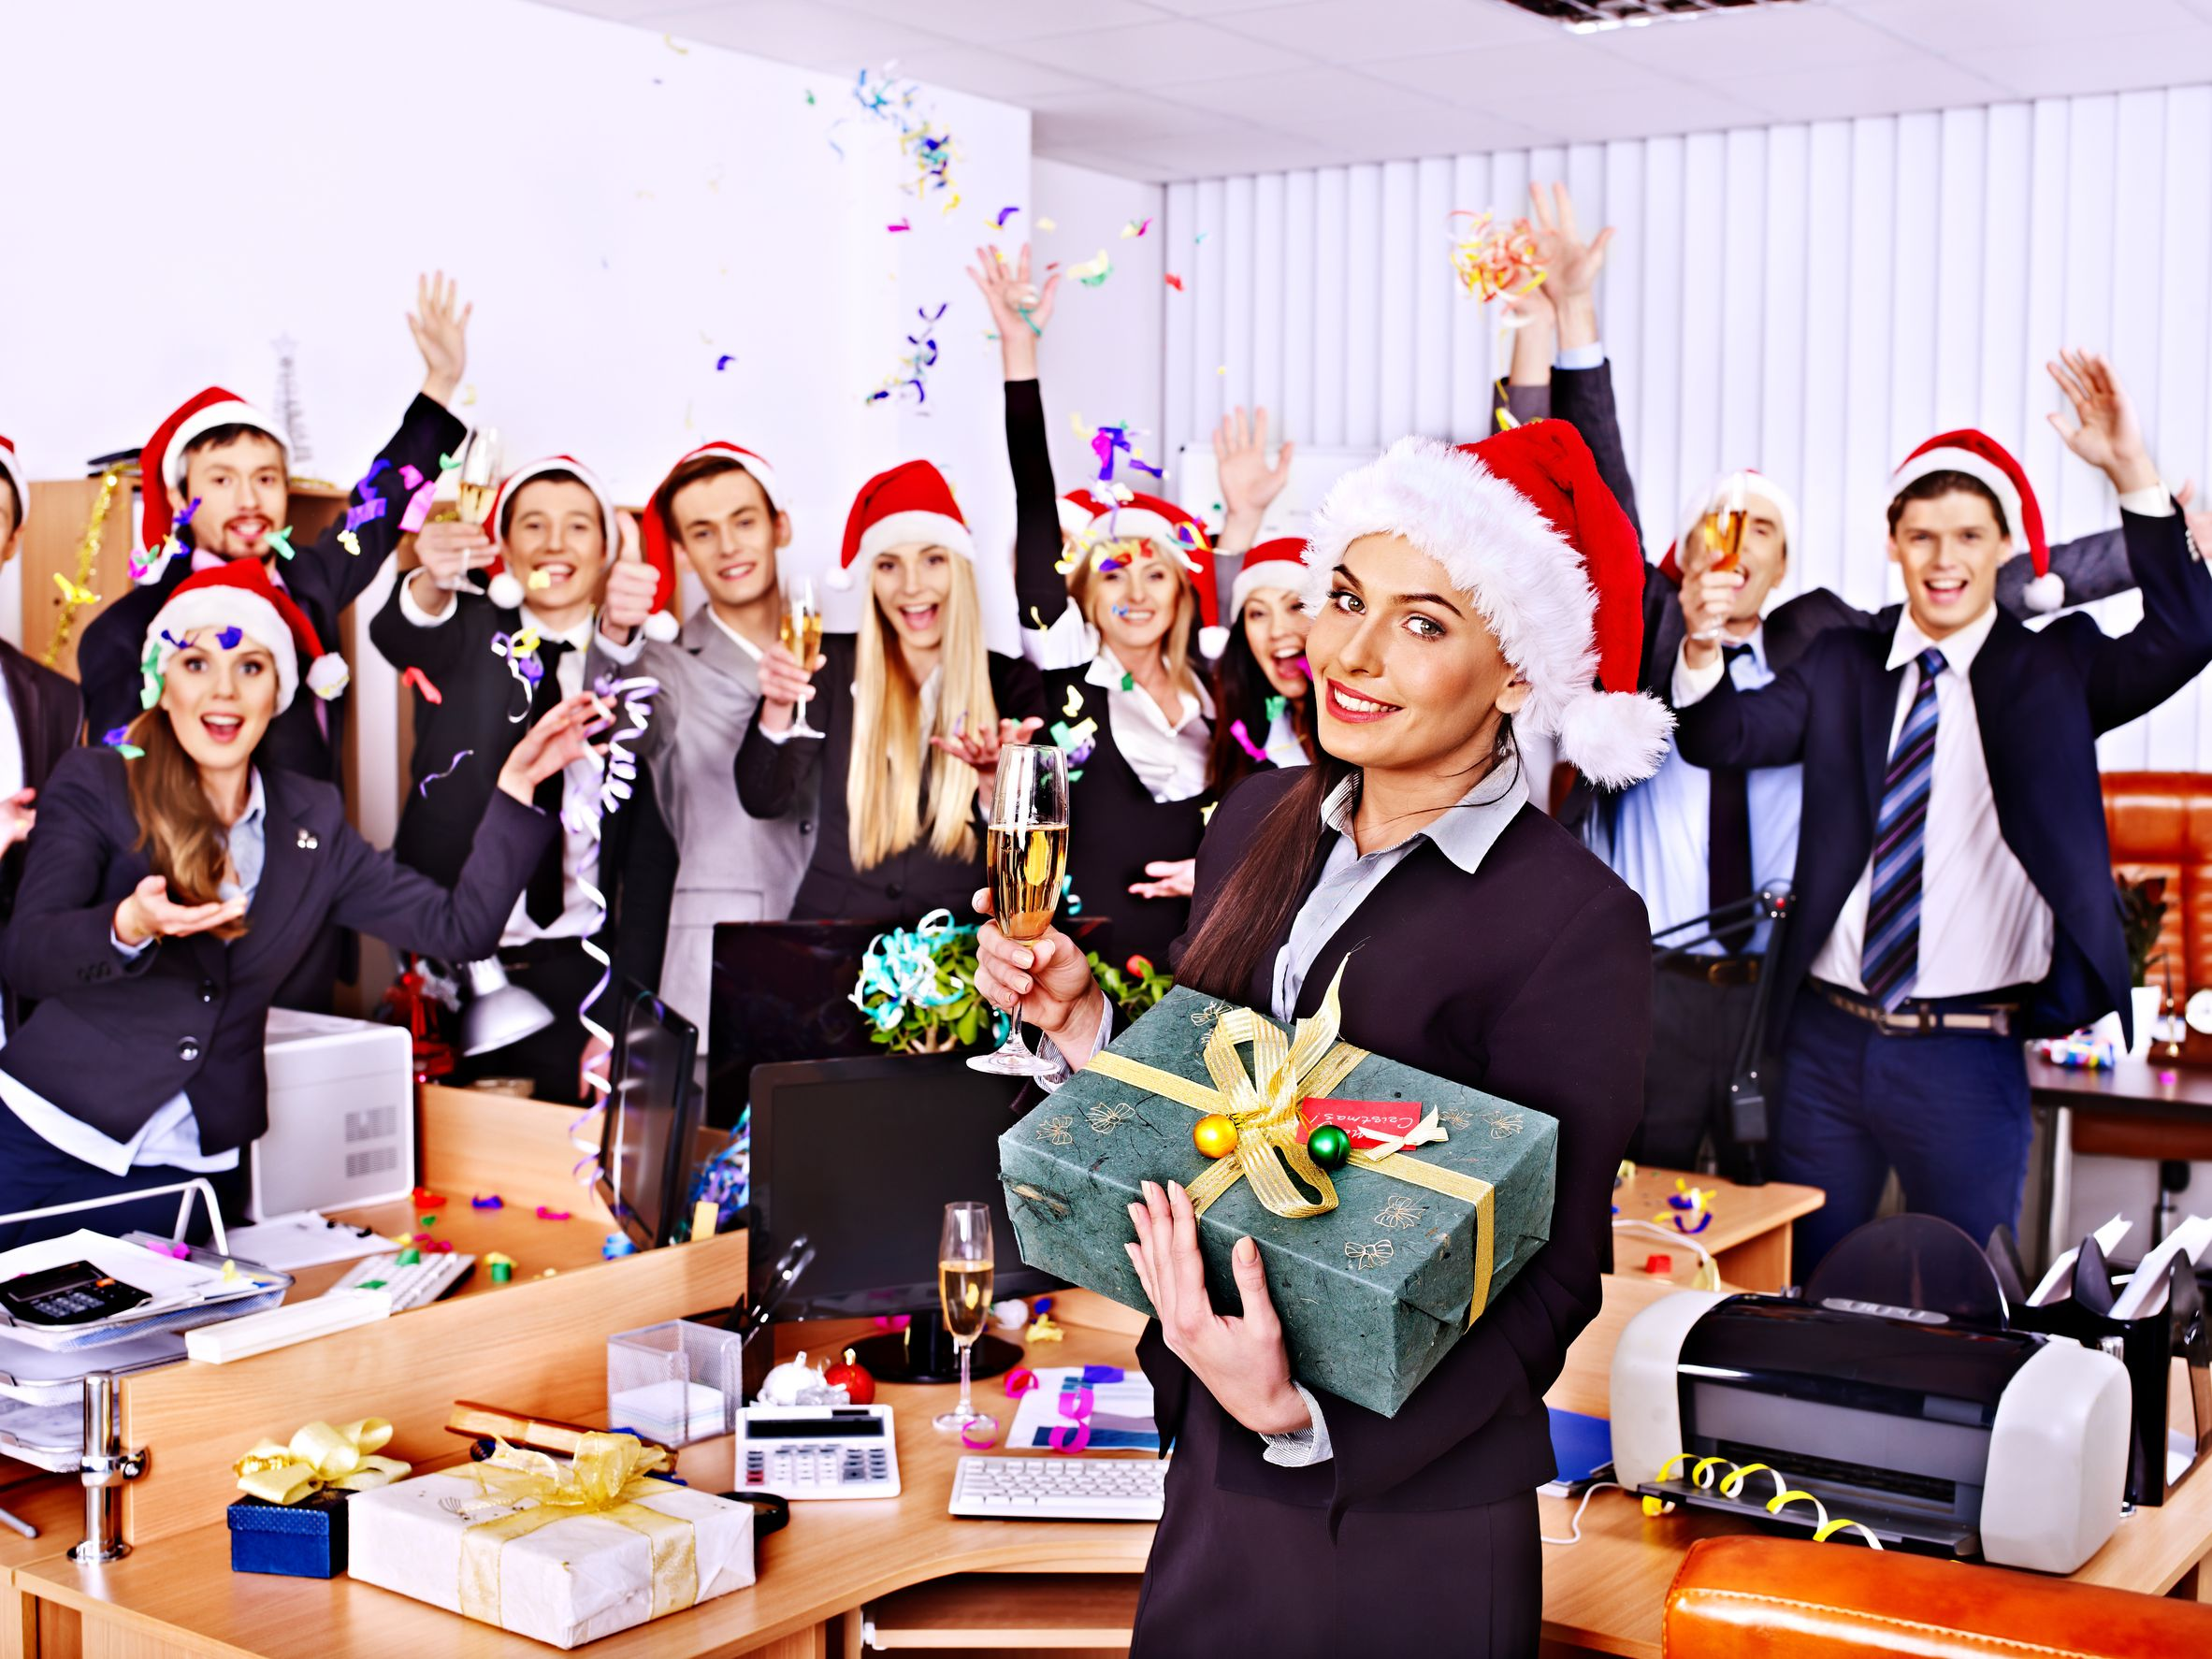 holiday season helpers stress relief career intelligence office holiday party